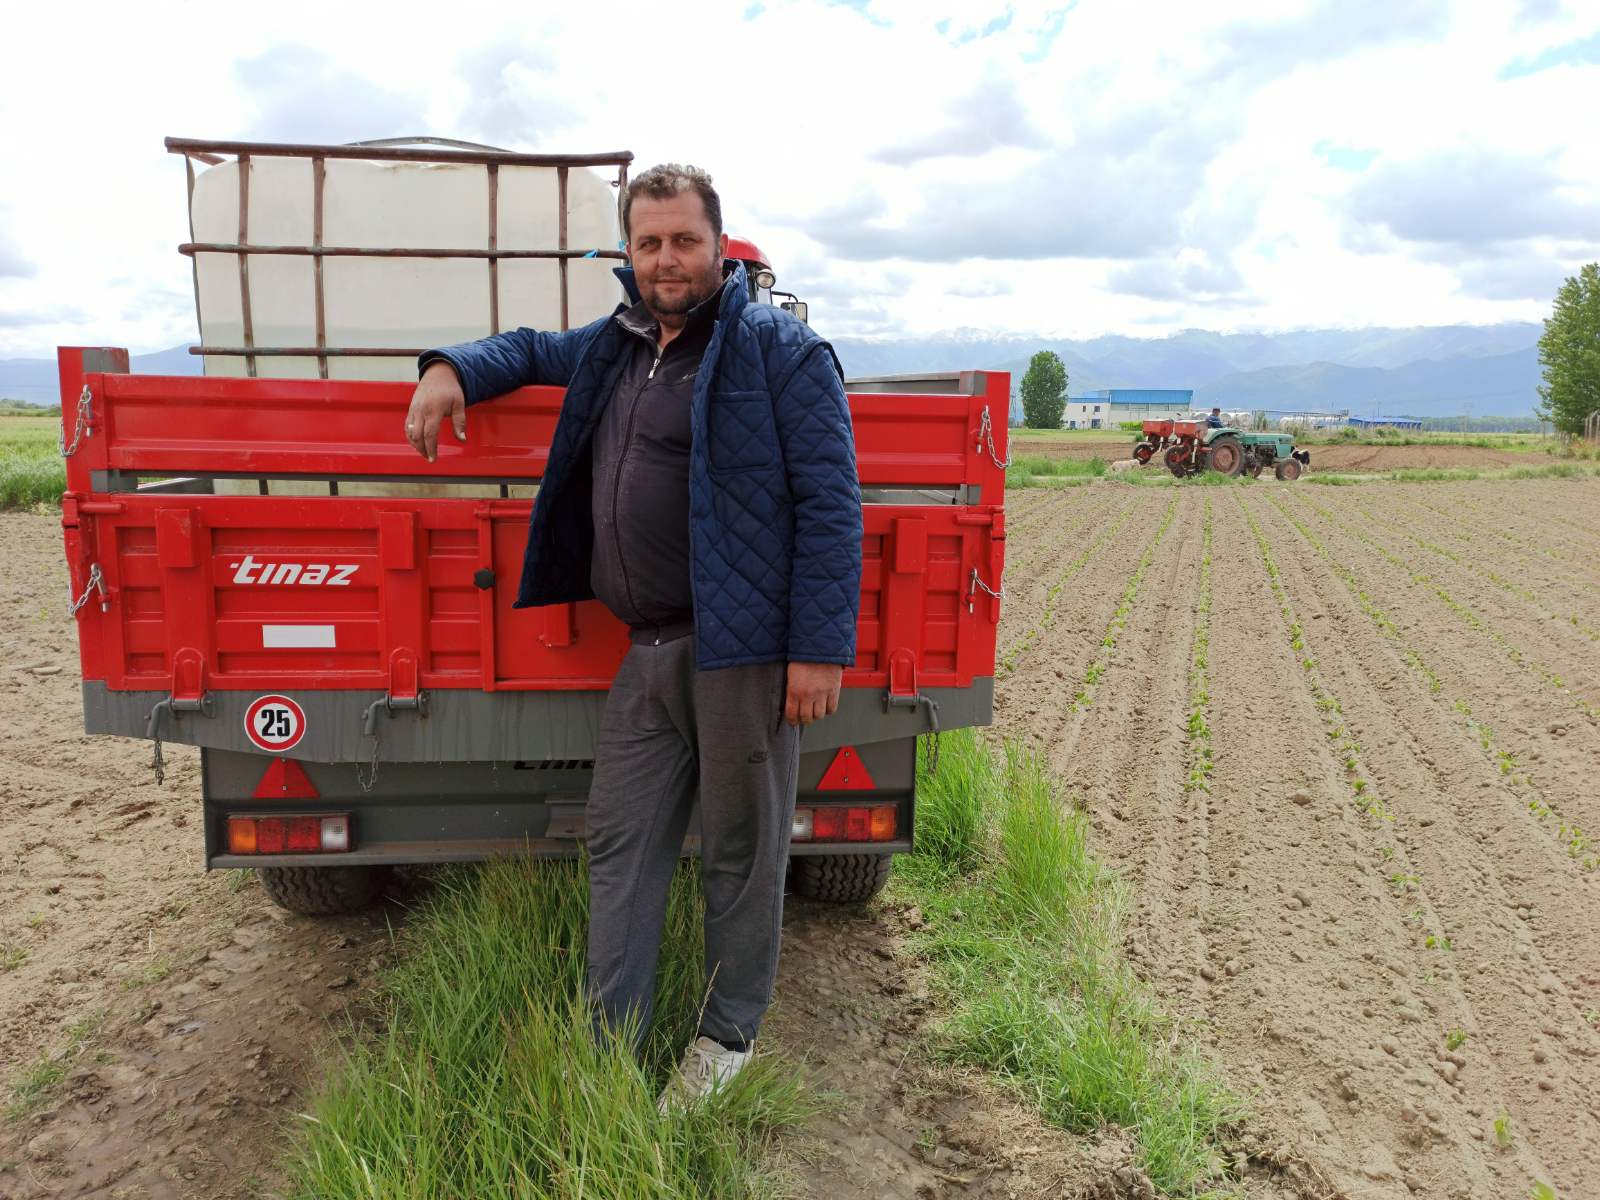 A farmer standing in front of a vehicle on a field